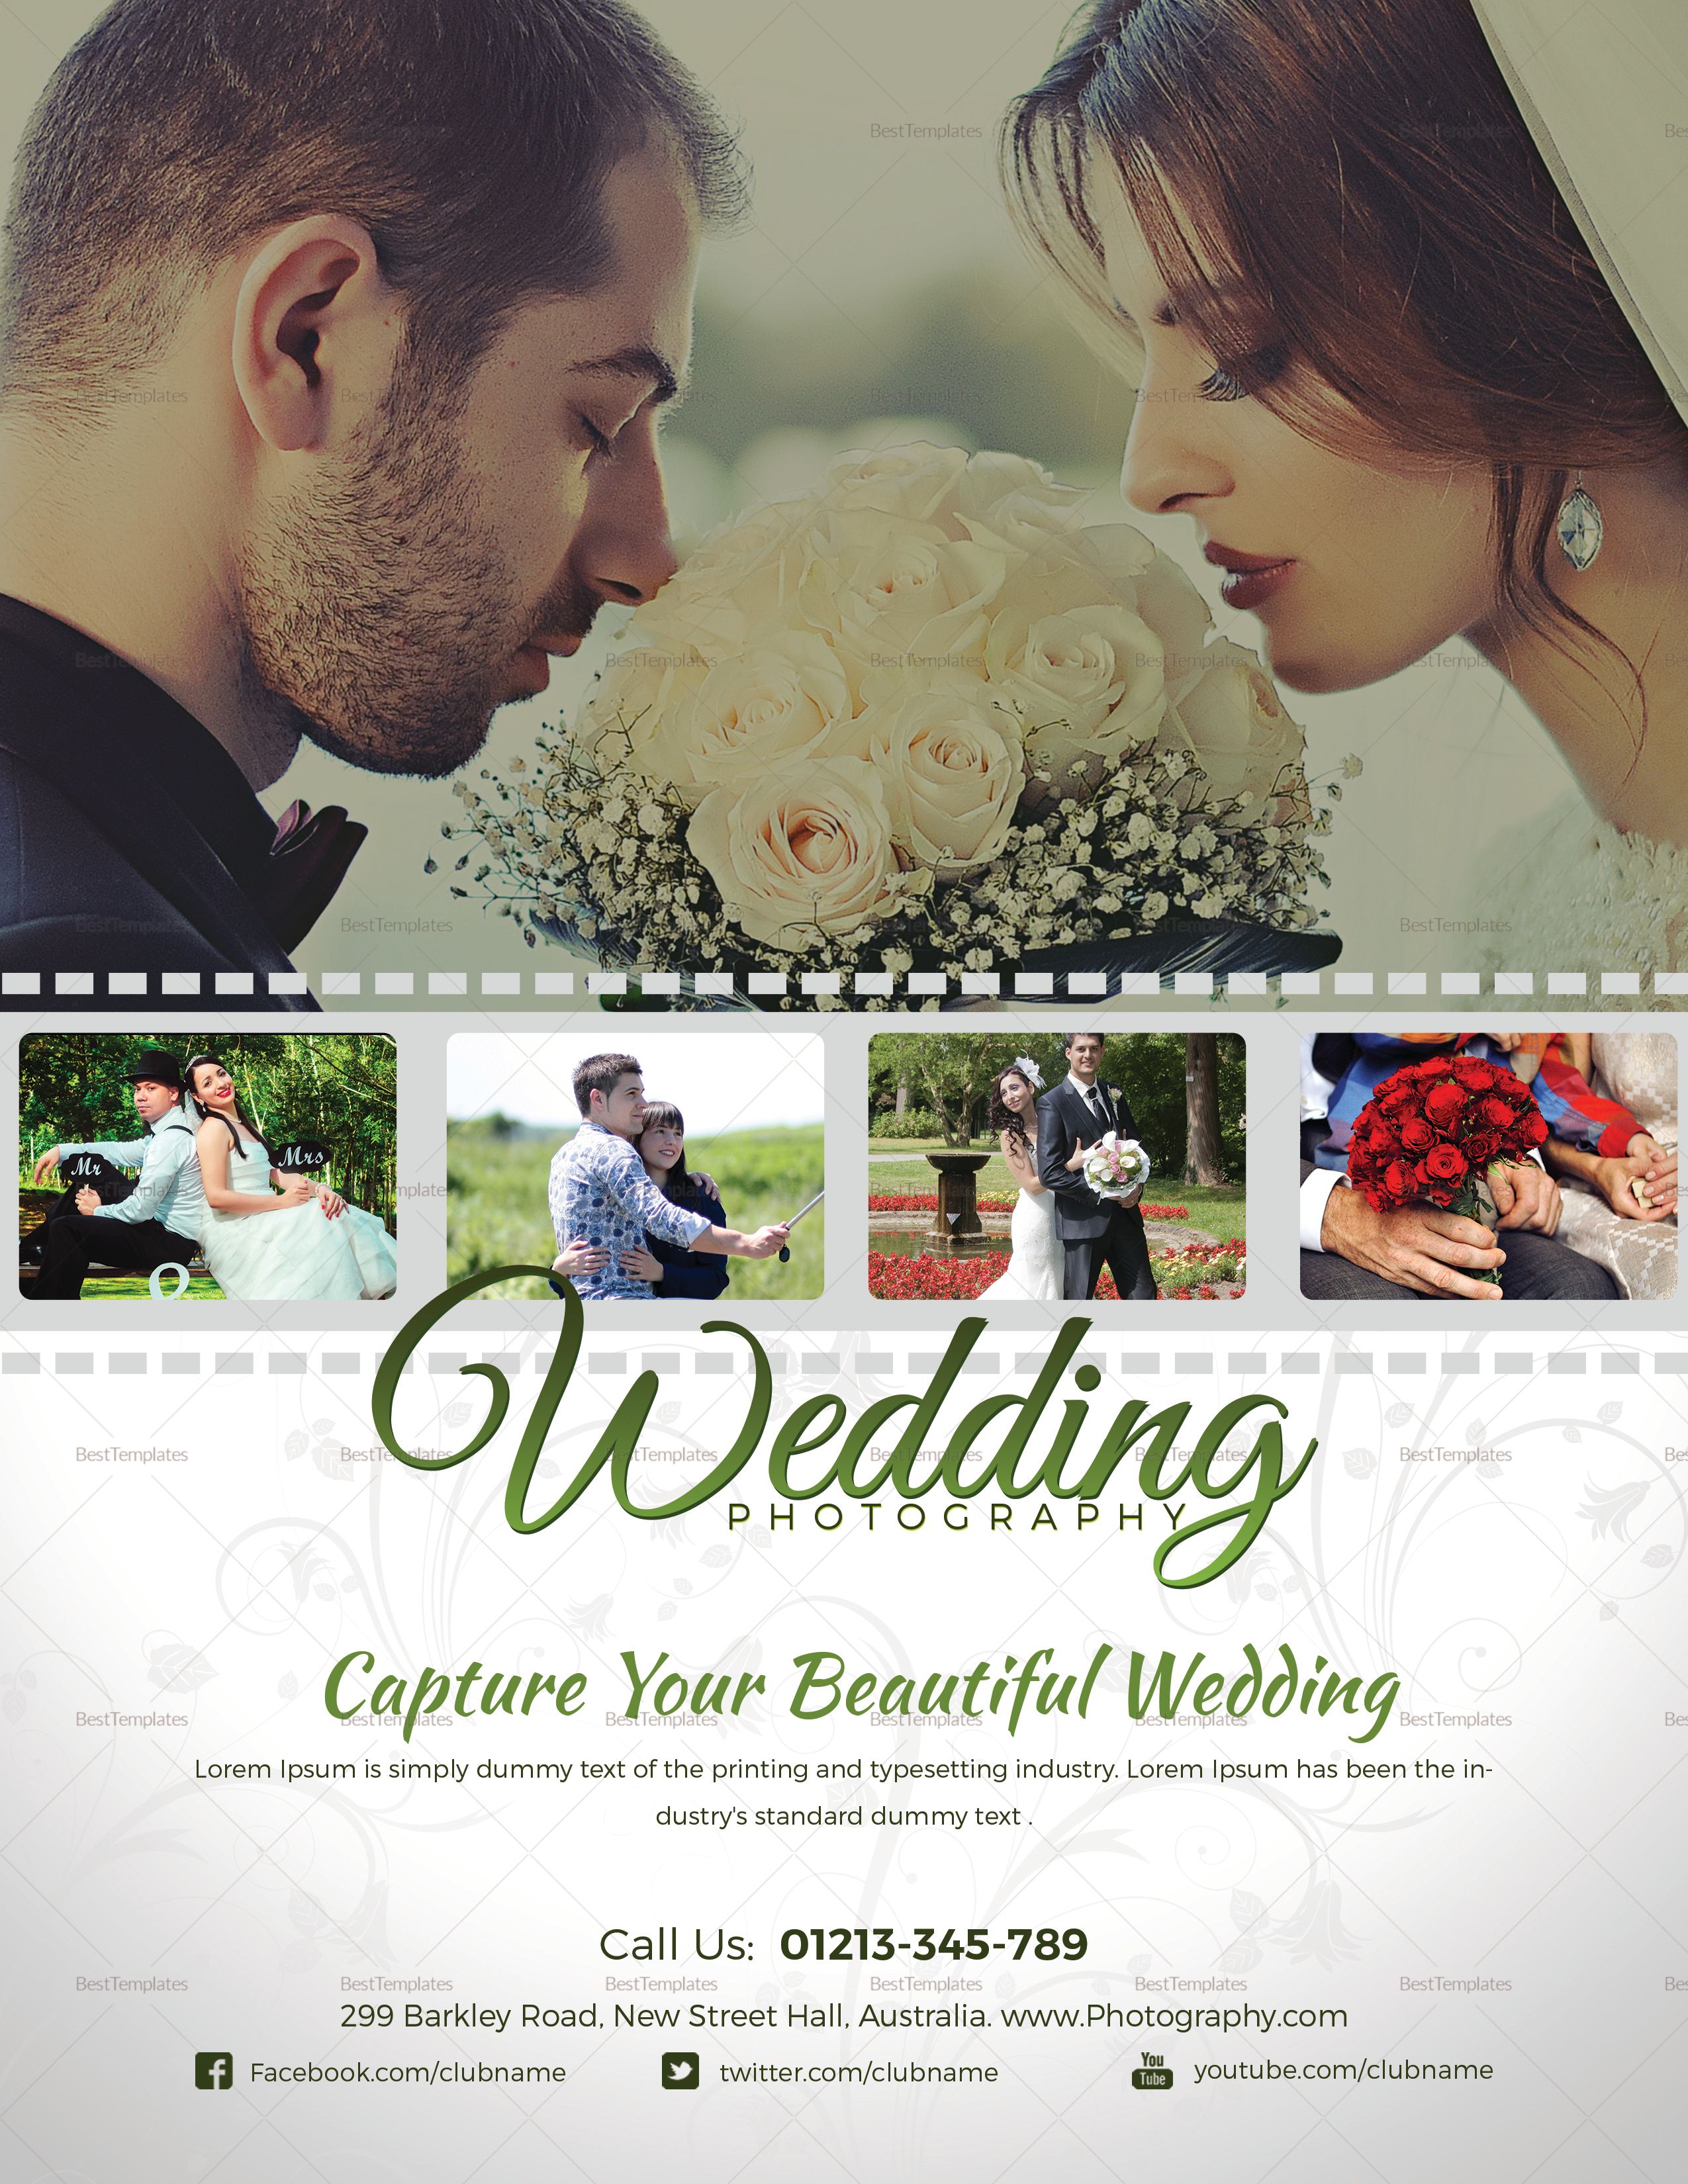 How To Advertise Your Wedding Photography Business: Wedding Photography Flyer Design Template In Word, PSD